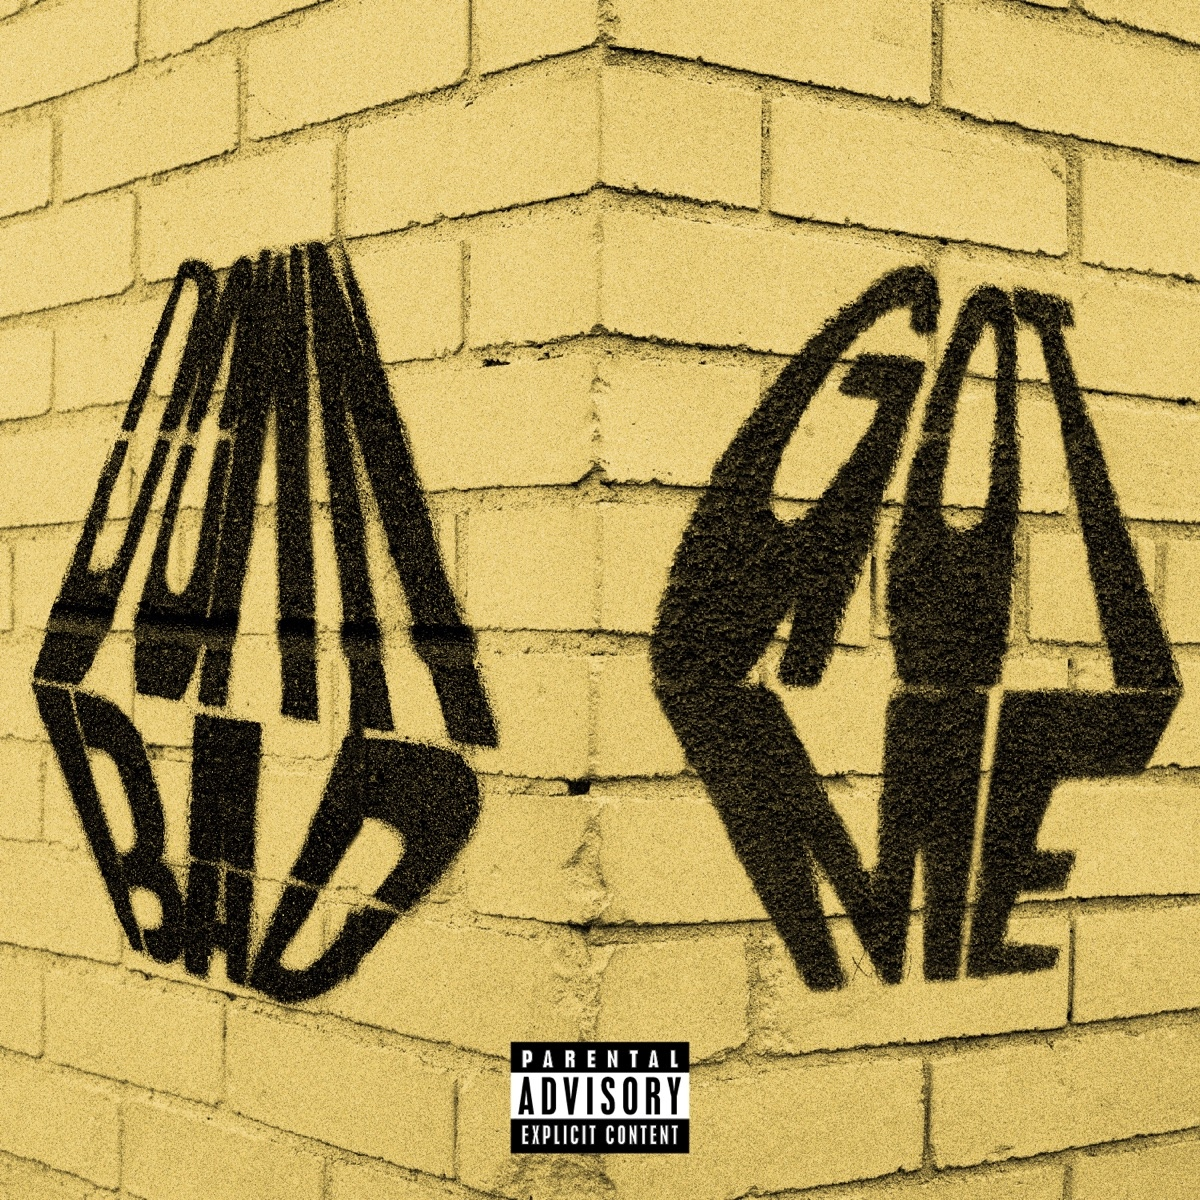 Dreamville — «Down Bad» (Feat. JID, Bas, J. Cole, EARTHGANG & Young Nudy) / «Got Me» (Feat. Ari Lennox, Omen, Ty Dolla $ign & Dreezy)